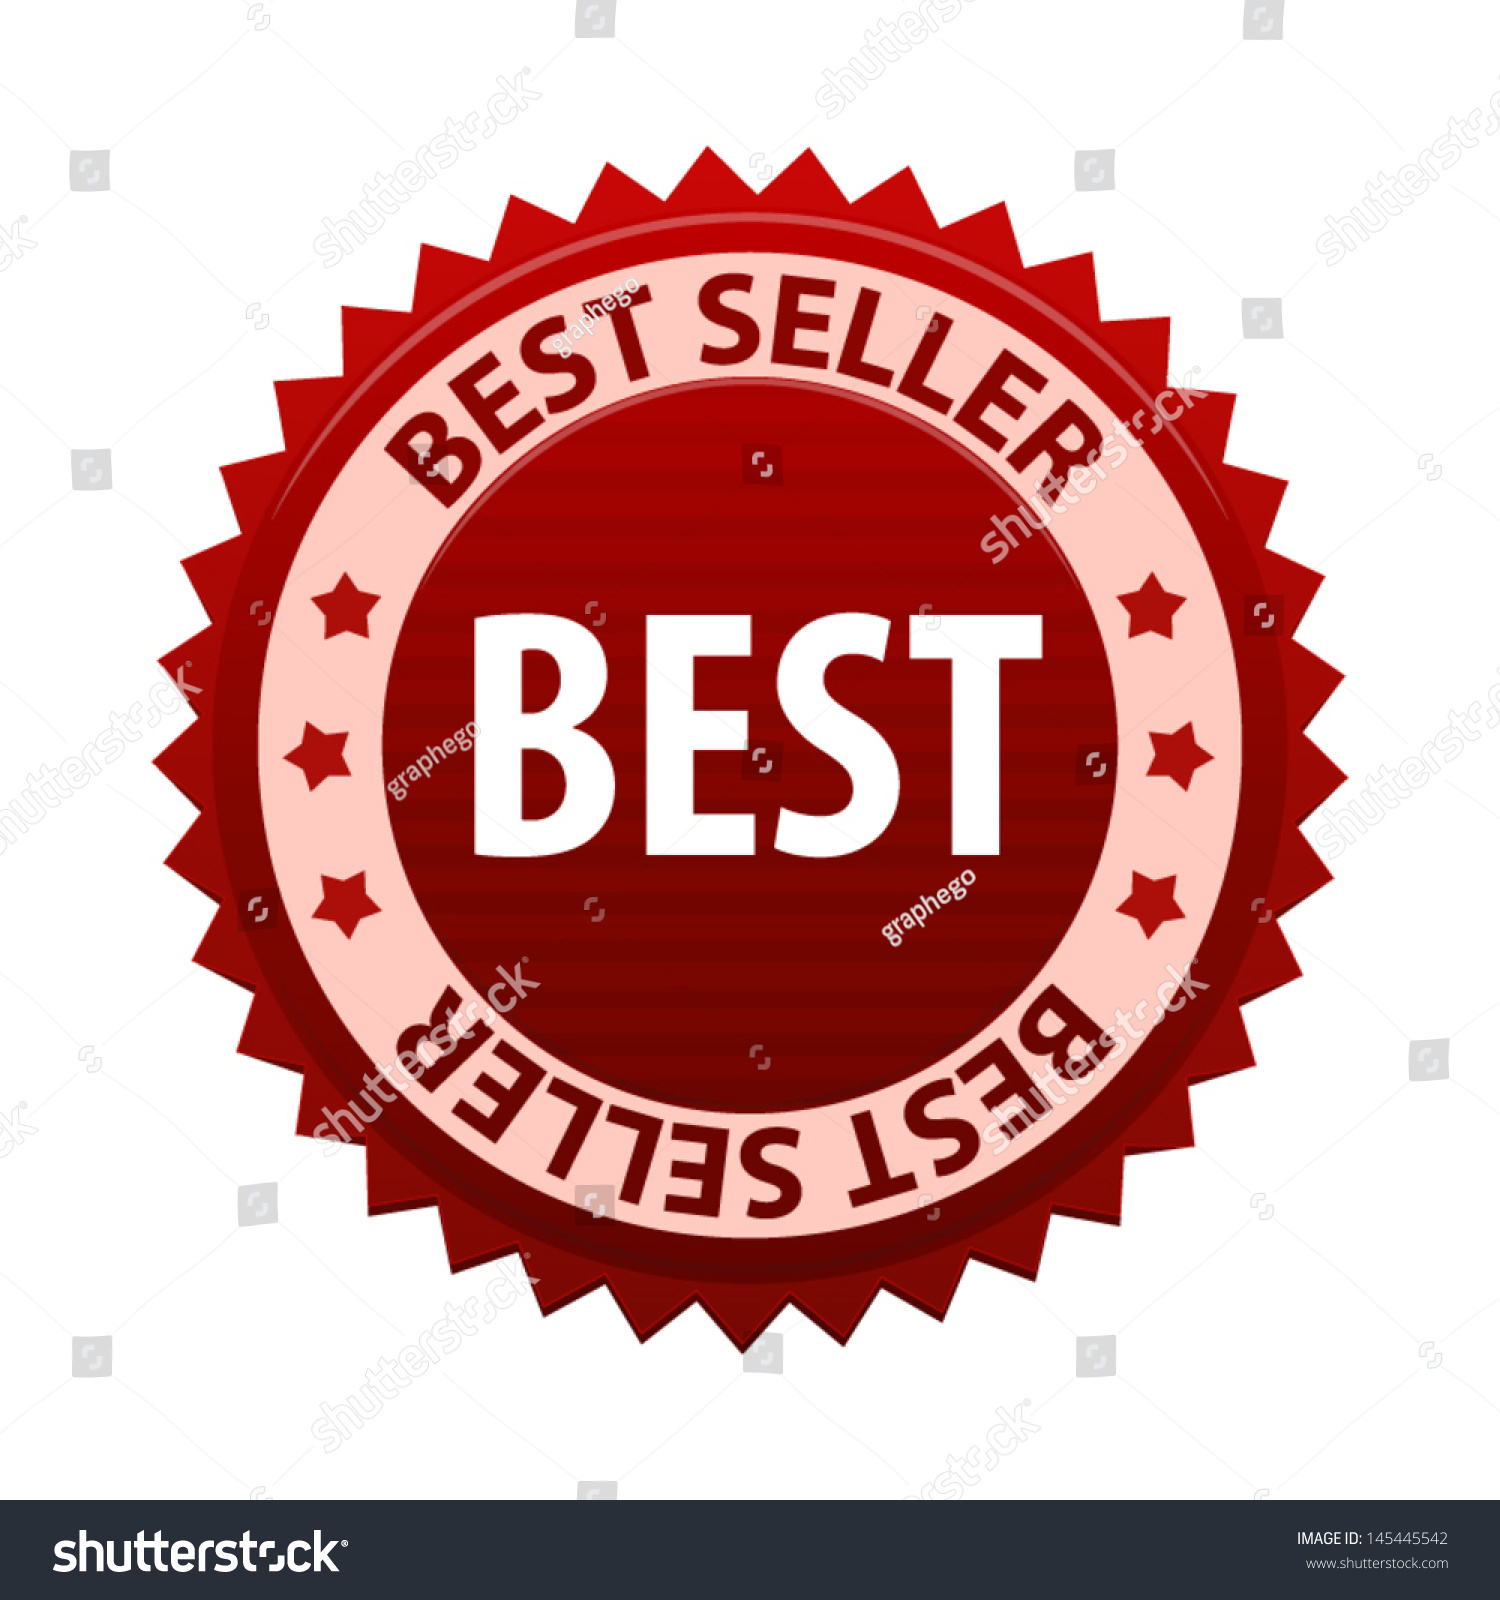 Red label text best seller icon 145445542 shutterstock for Best seller